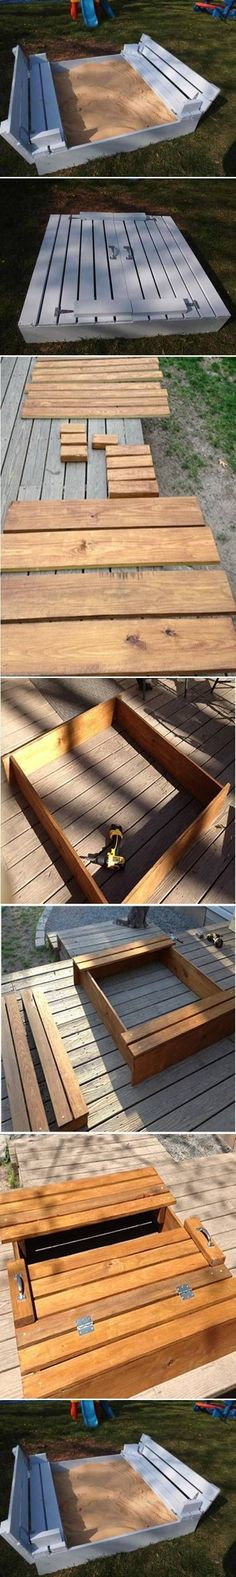 DIY Sandbox for Kids | iCreativeIdeas.com Like Us on Facebook ==> https://www.facebook.com/icreativeideas